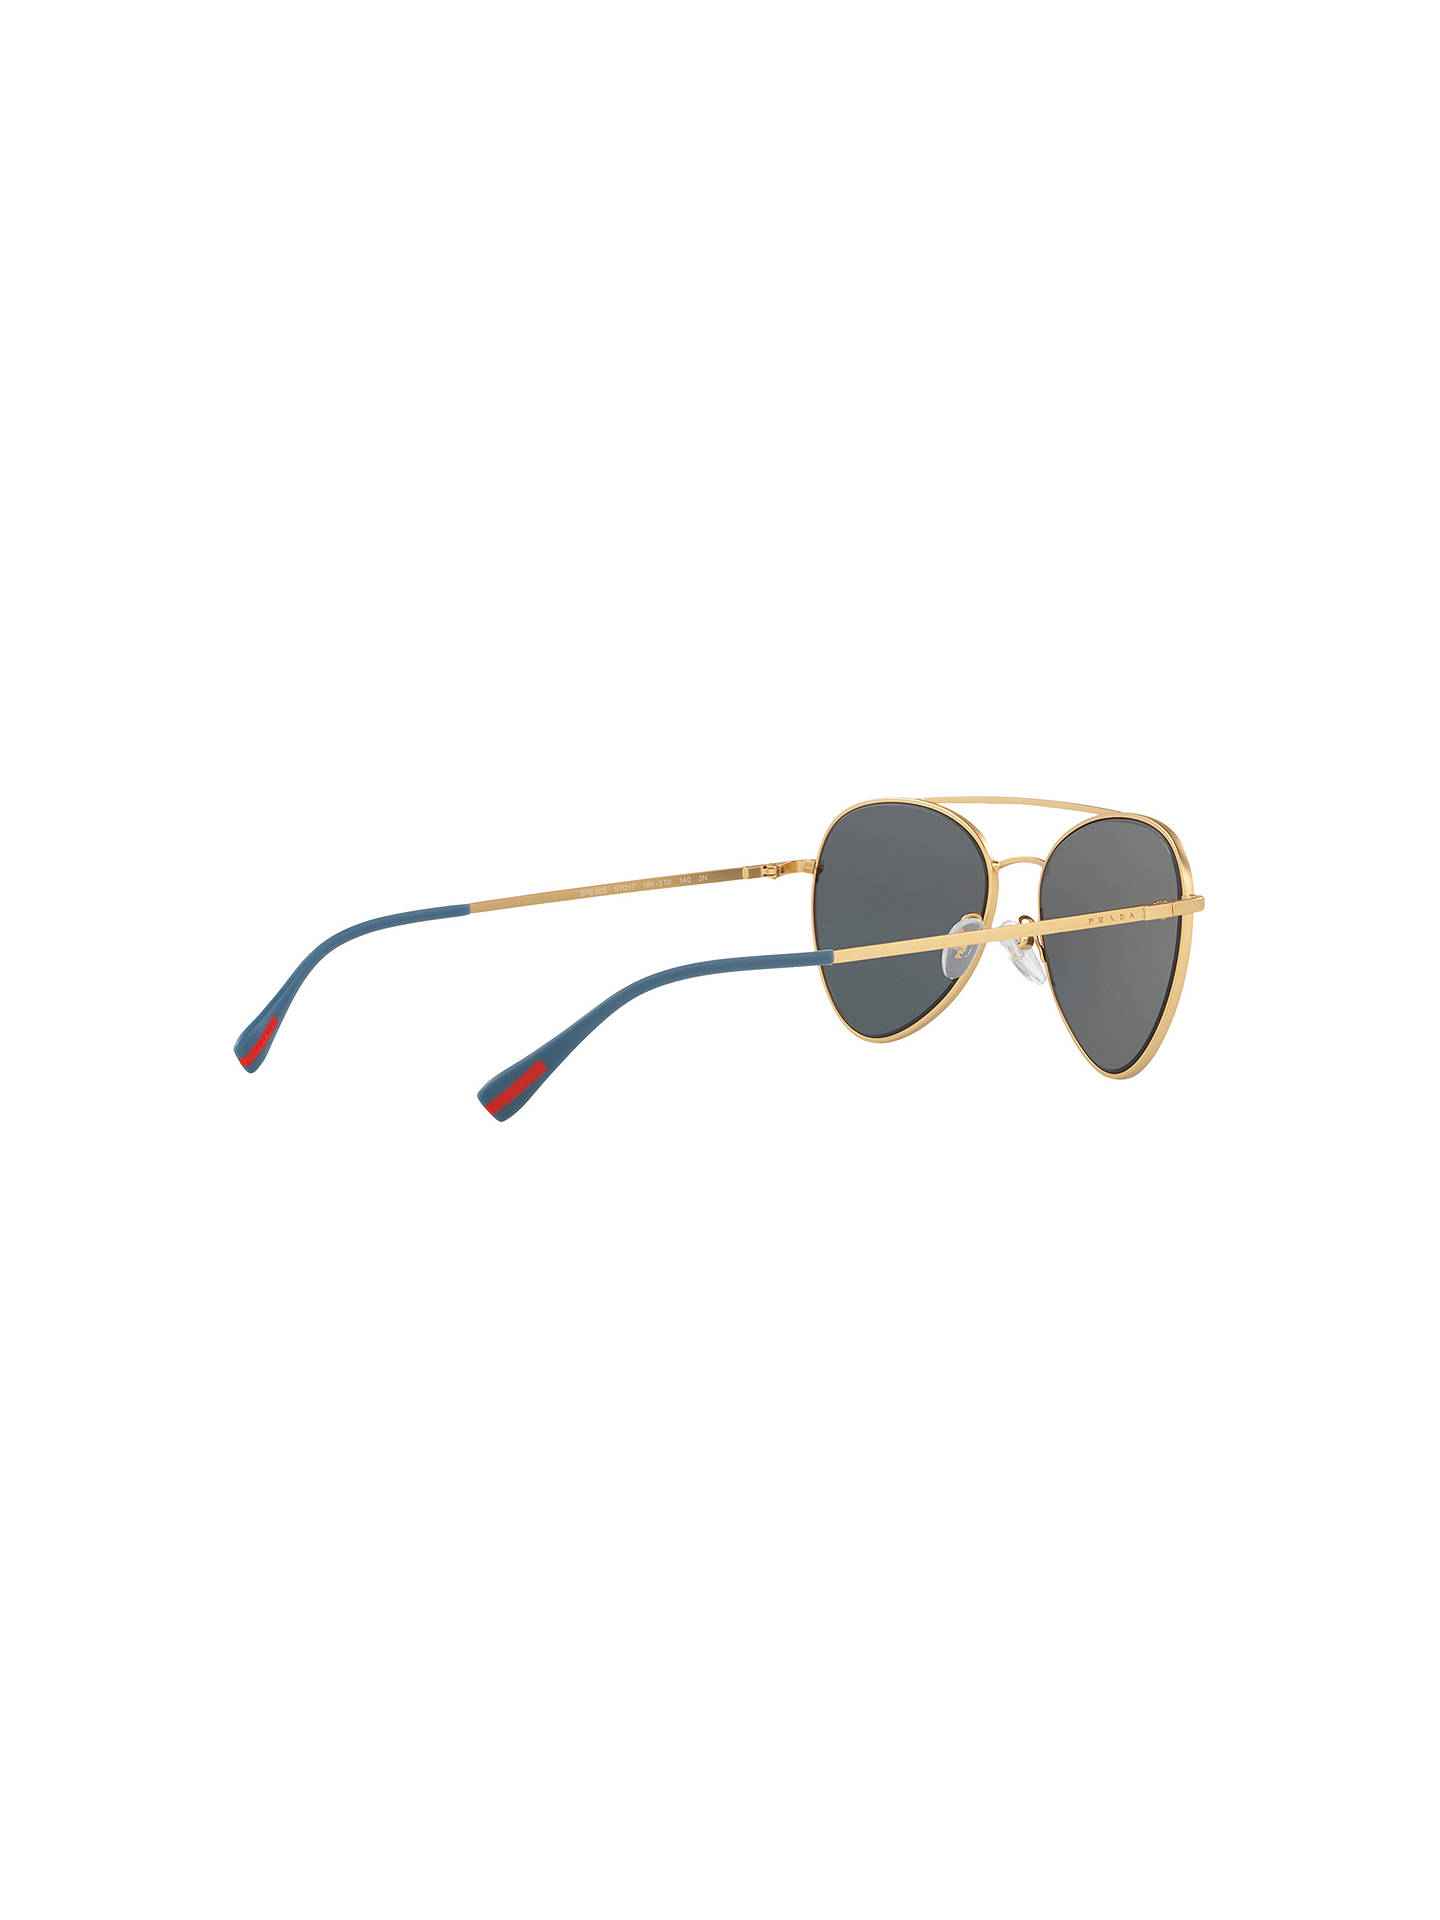 Buy Prada PS 50SS Oval Sunglasses, Gold/Mirror Lilac Online at johnlewis.com